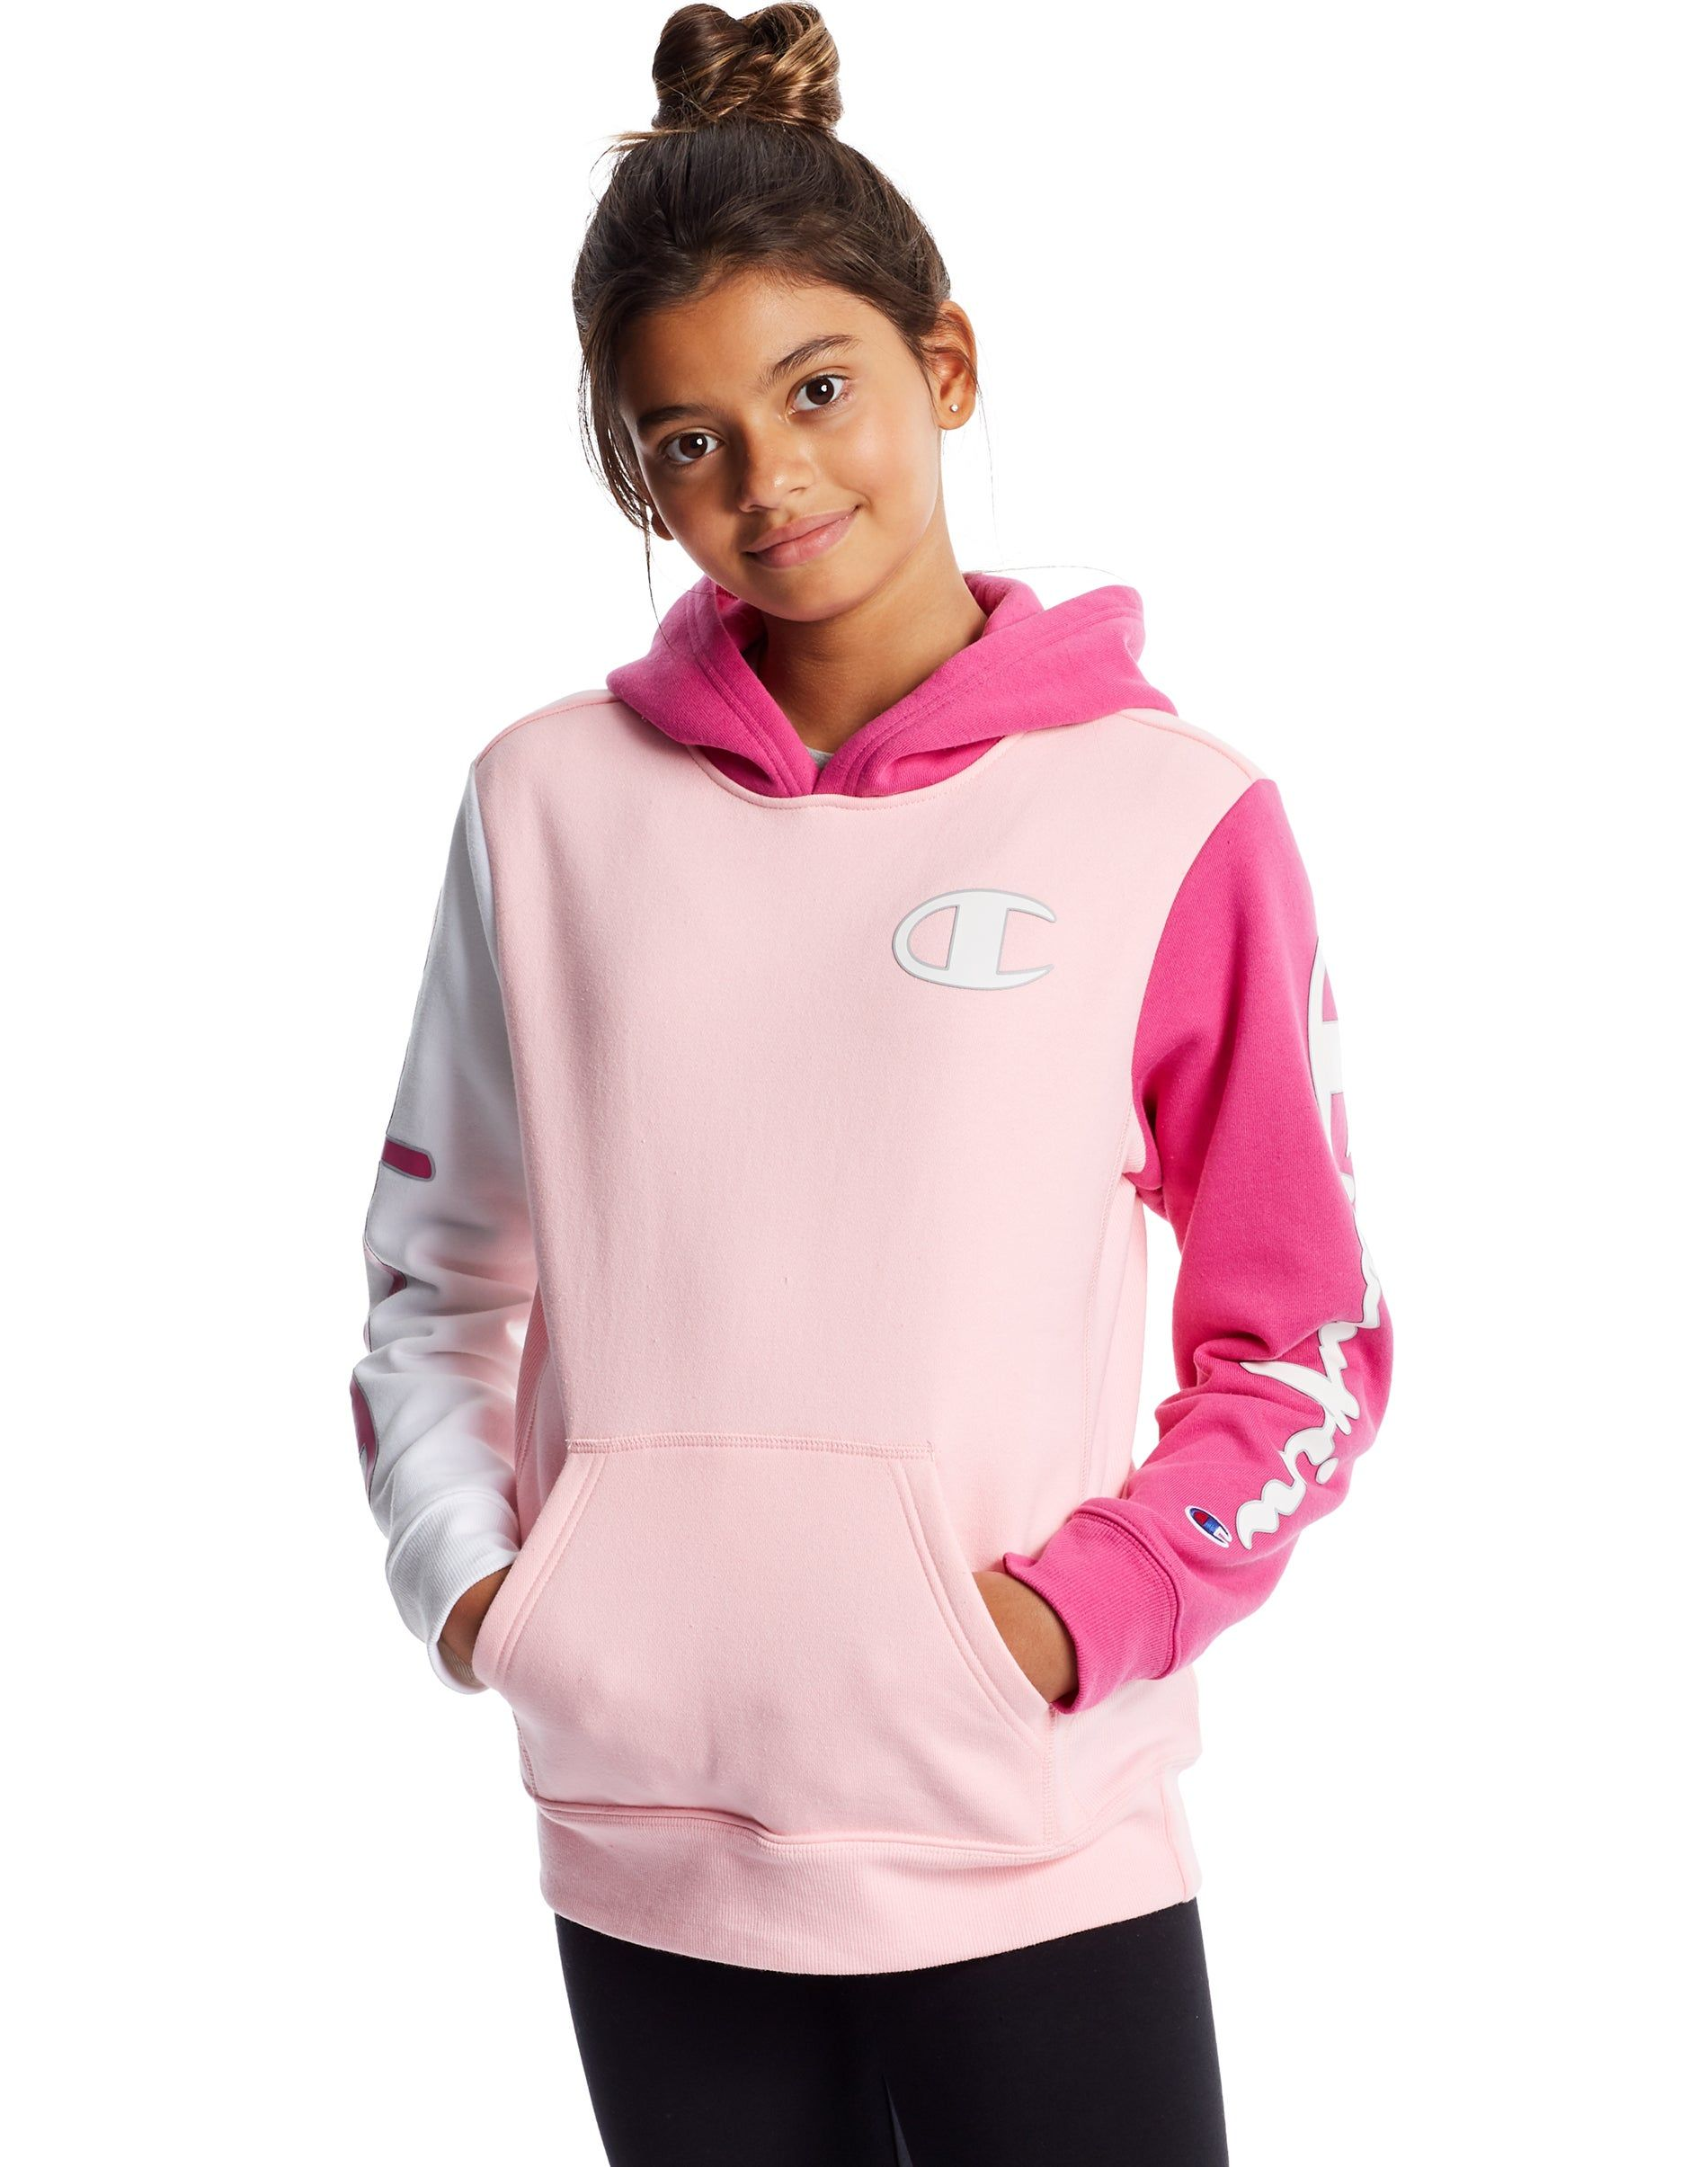 Kids Champion Life Reverse Weave Colorblock Hoodie Pink Candy Peony Parade Pink White In 2021 Youth Hoodies Champion Reverse Weave Hoodies [ 2410 x 1900 Pixel ]